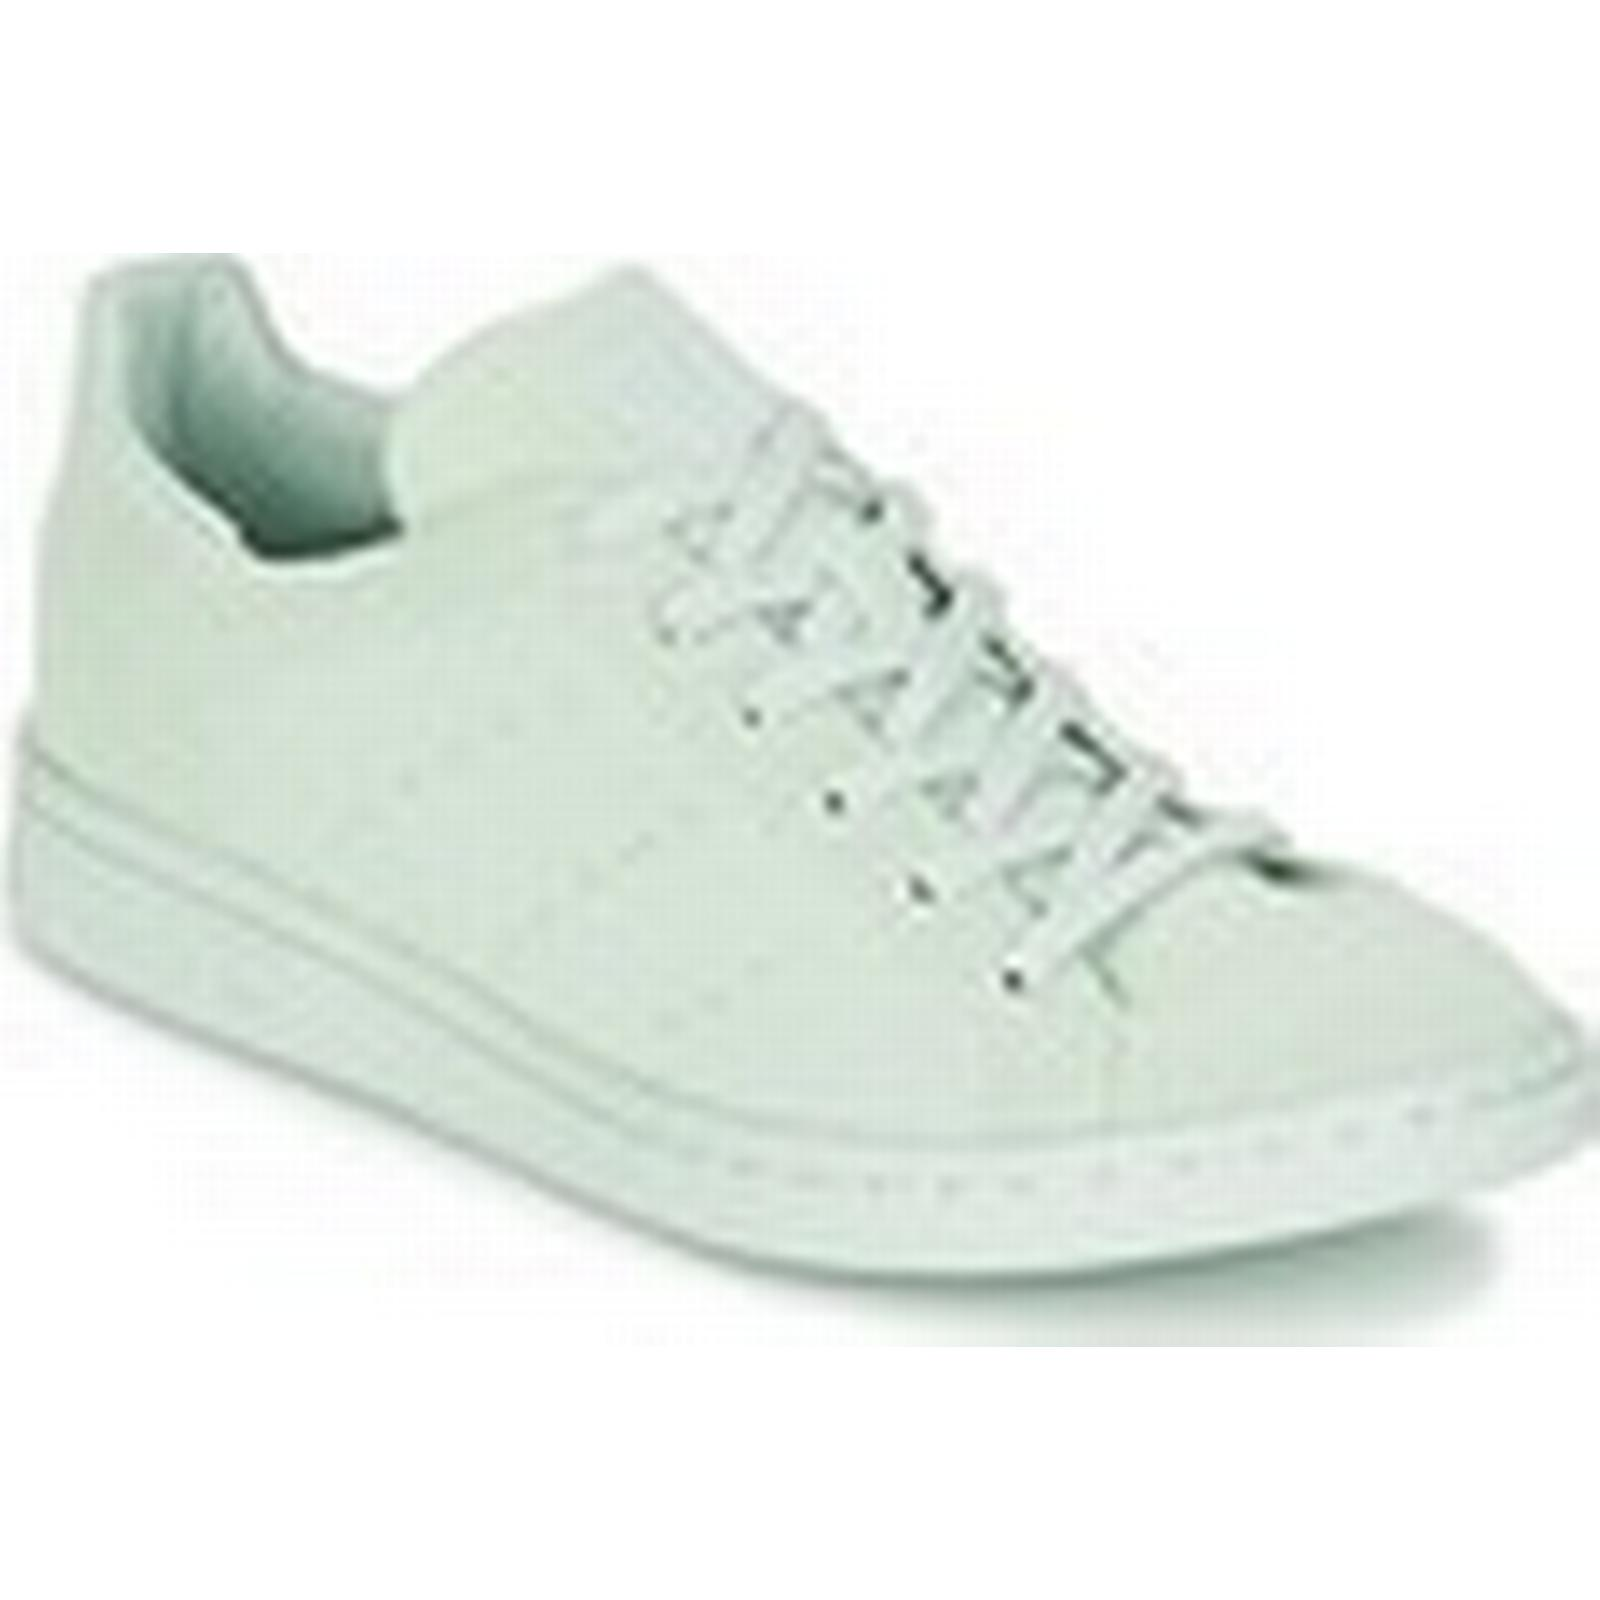 Adidas  STAN SMITH PK PK SMITH  women's Shoes (Trainers) in Green 45b4d9